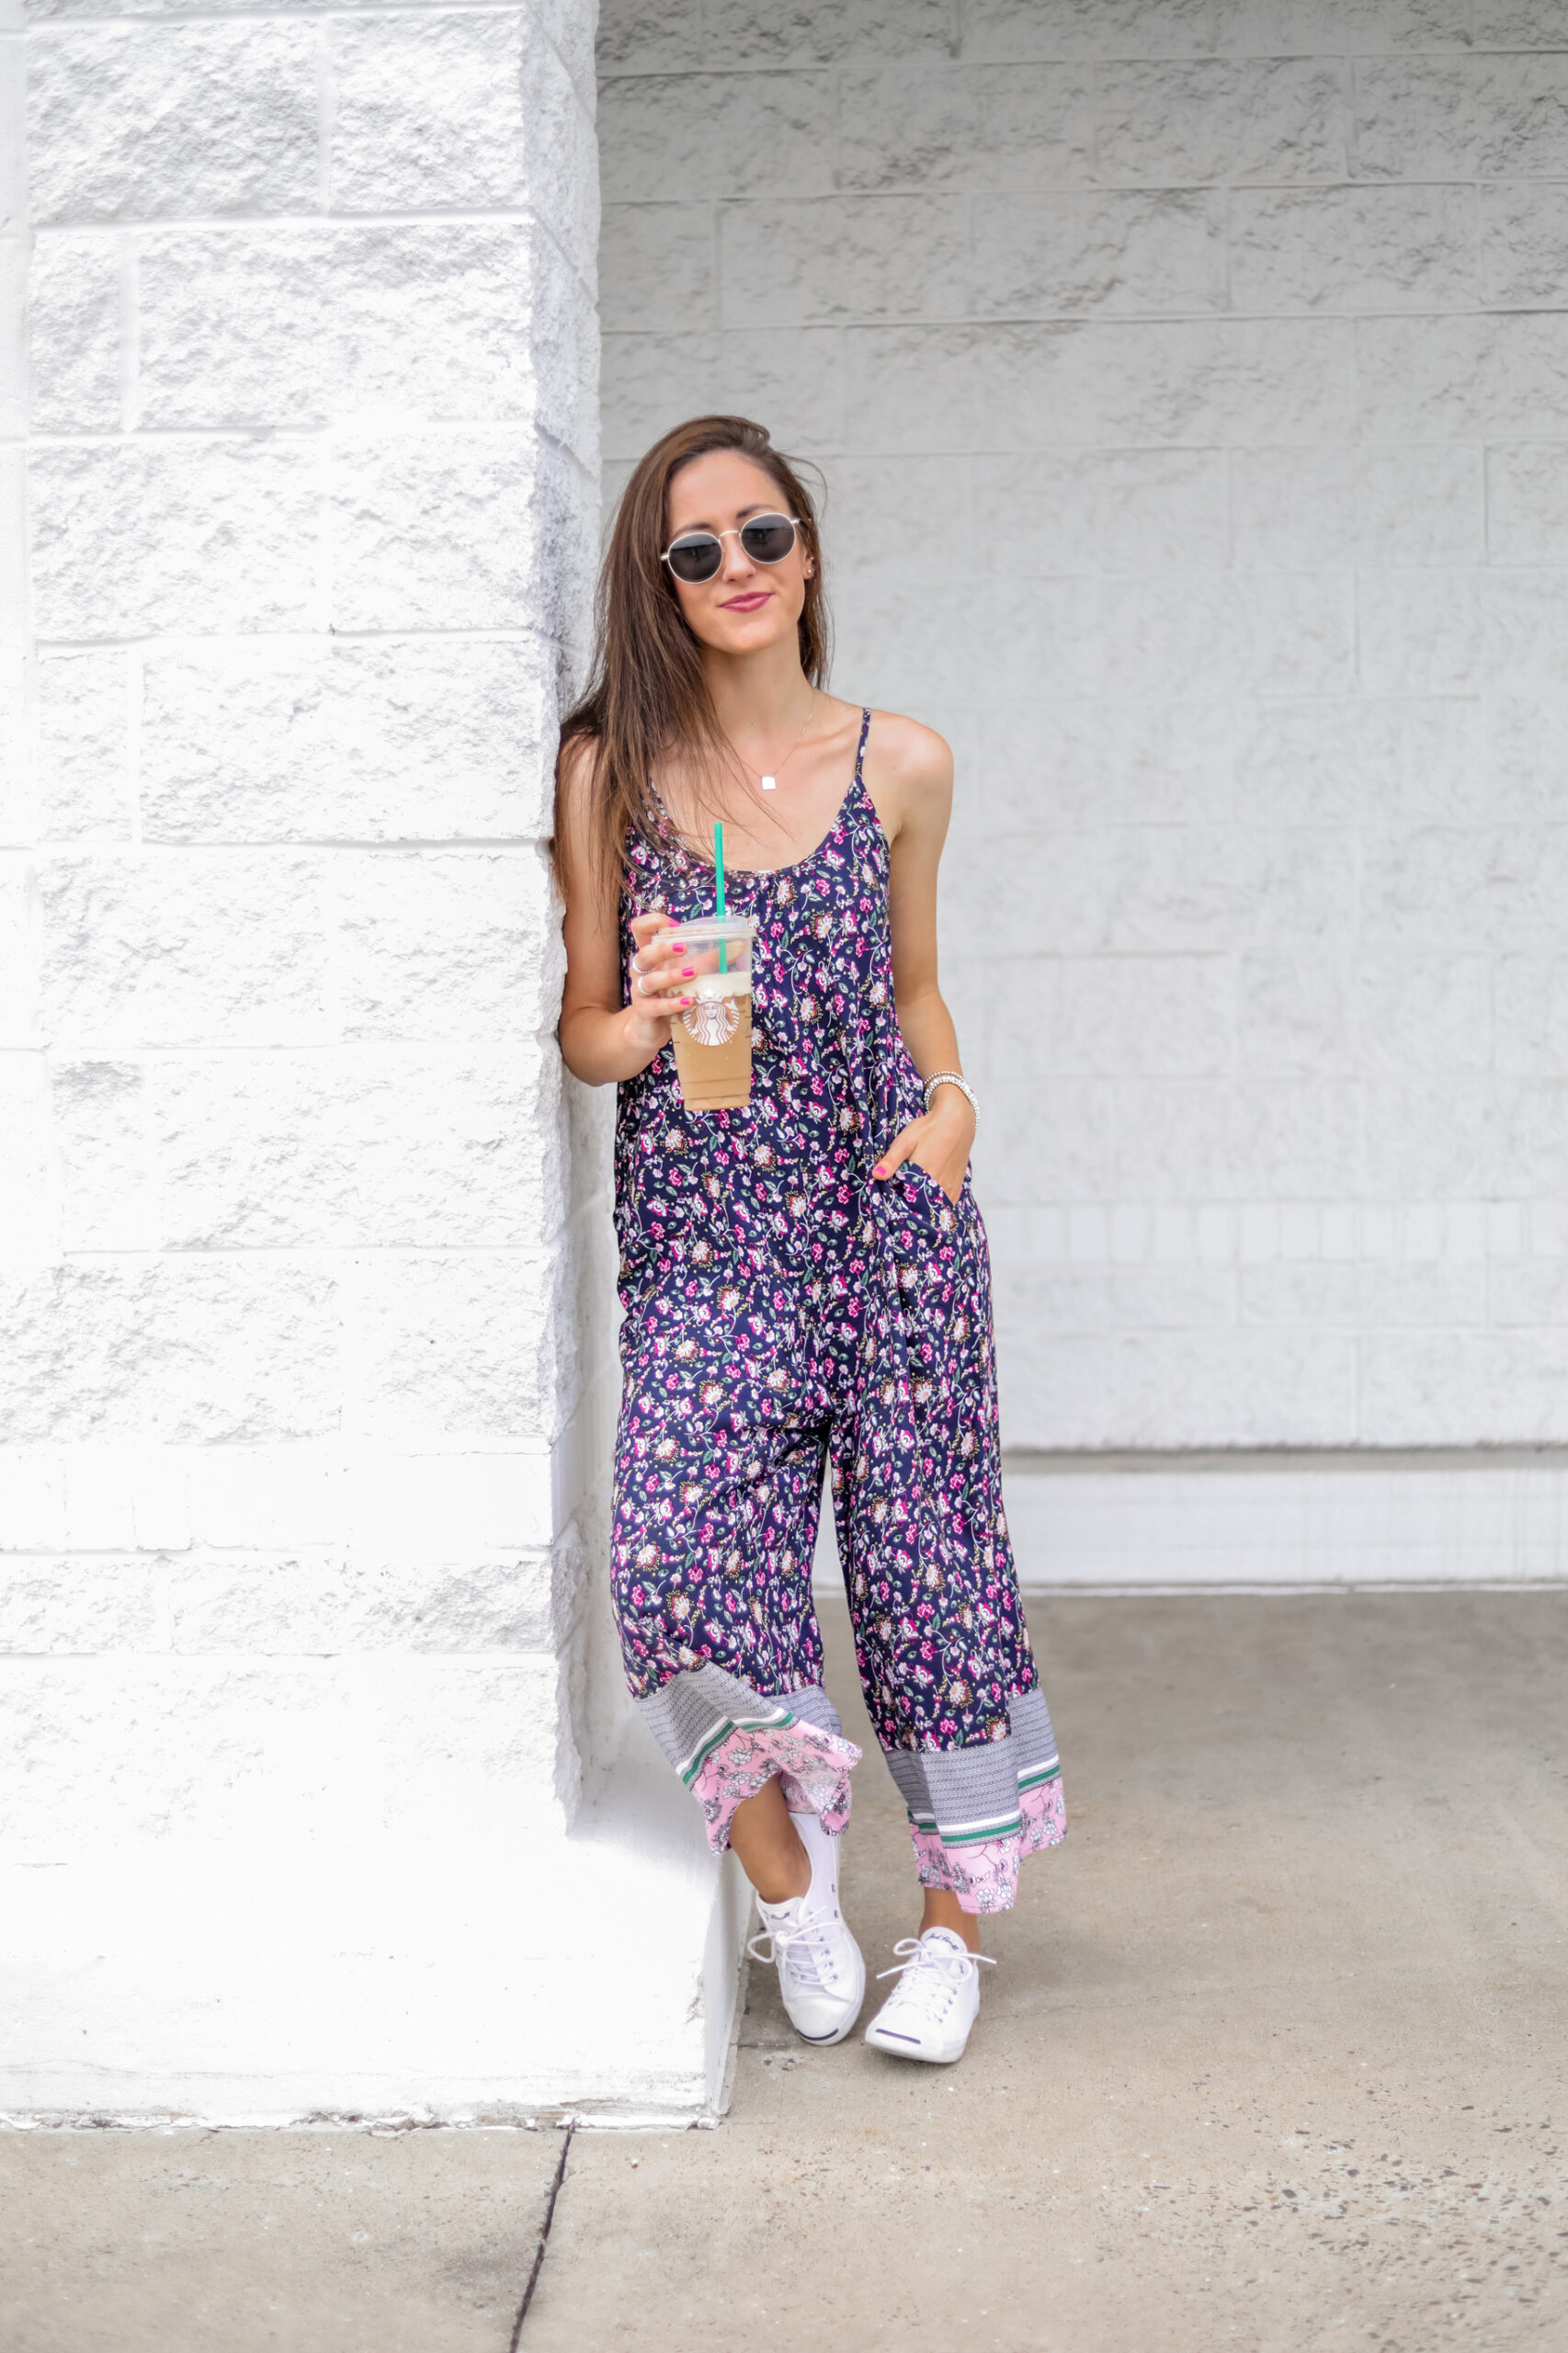 $17 AMAZON JUMPSUIT - Pretty floral prints and easy, breezy fit! - on Coming Up Roses